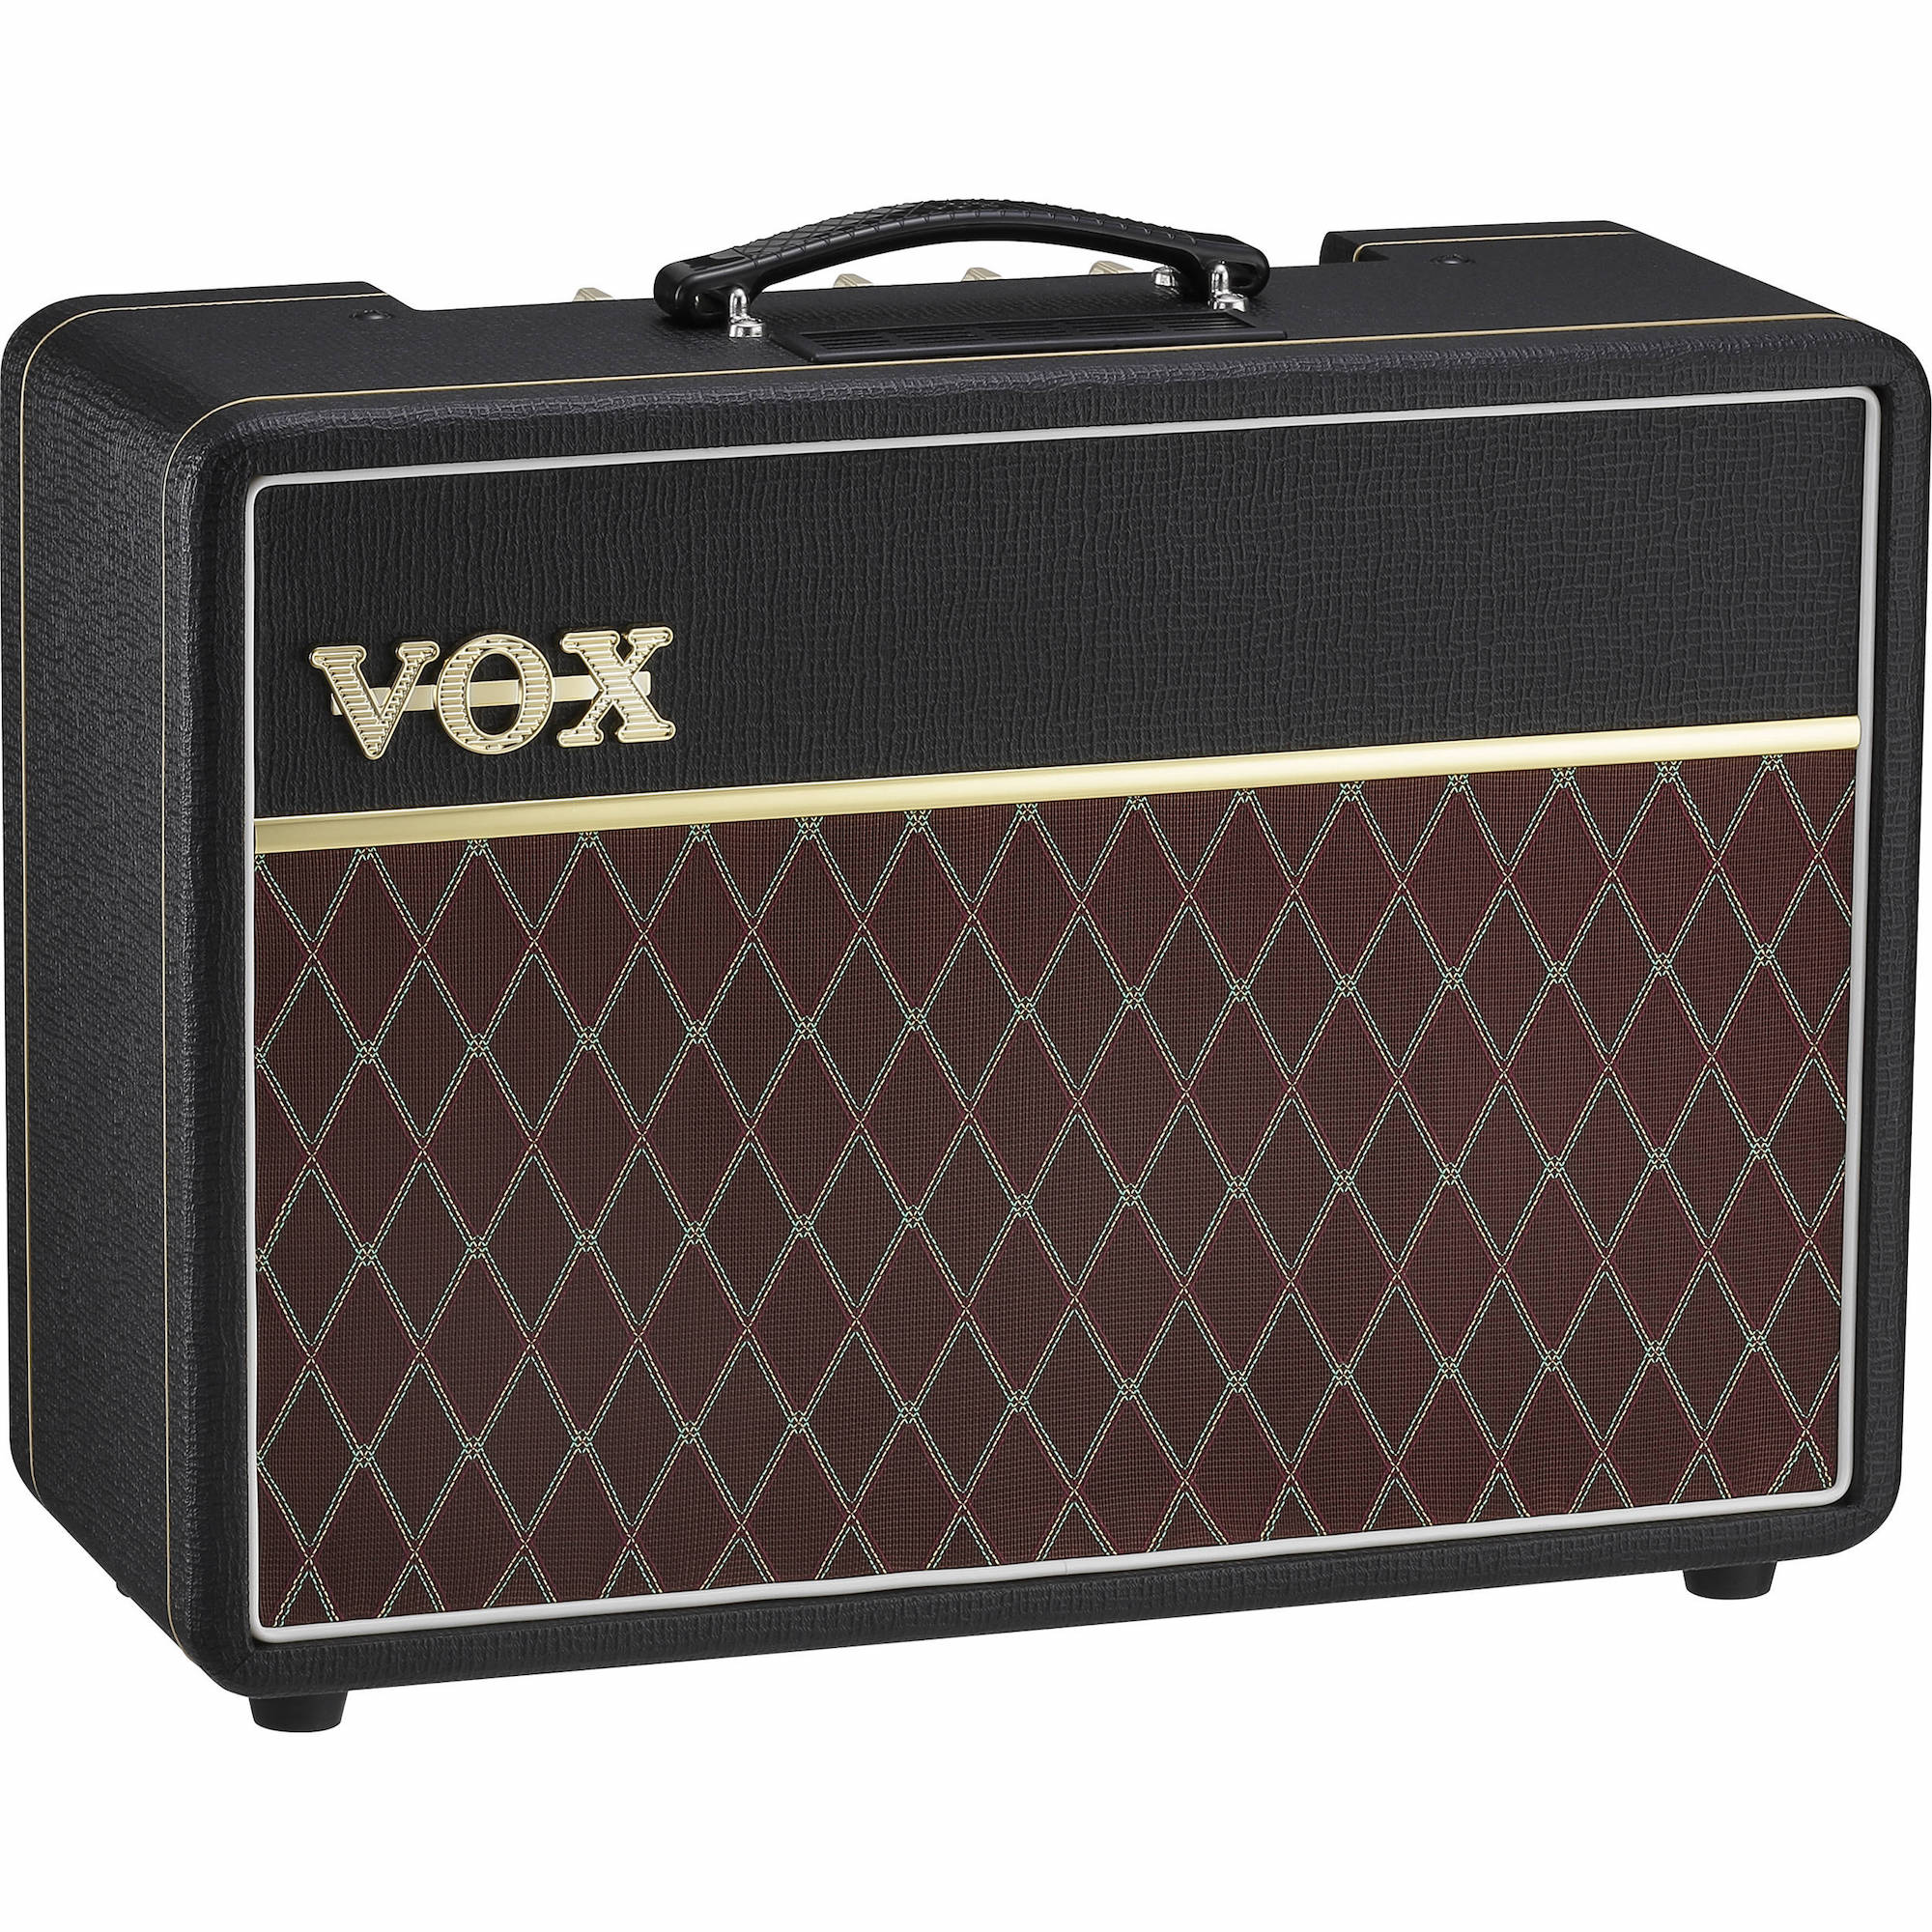 "Vox AC10C1 1x10"" 10-Watt Tube Combo 